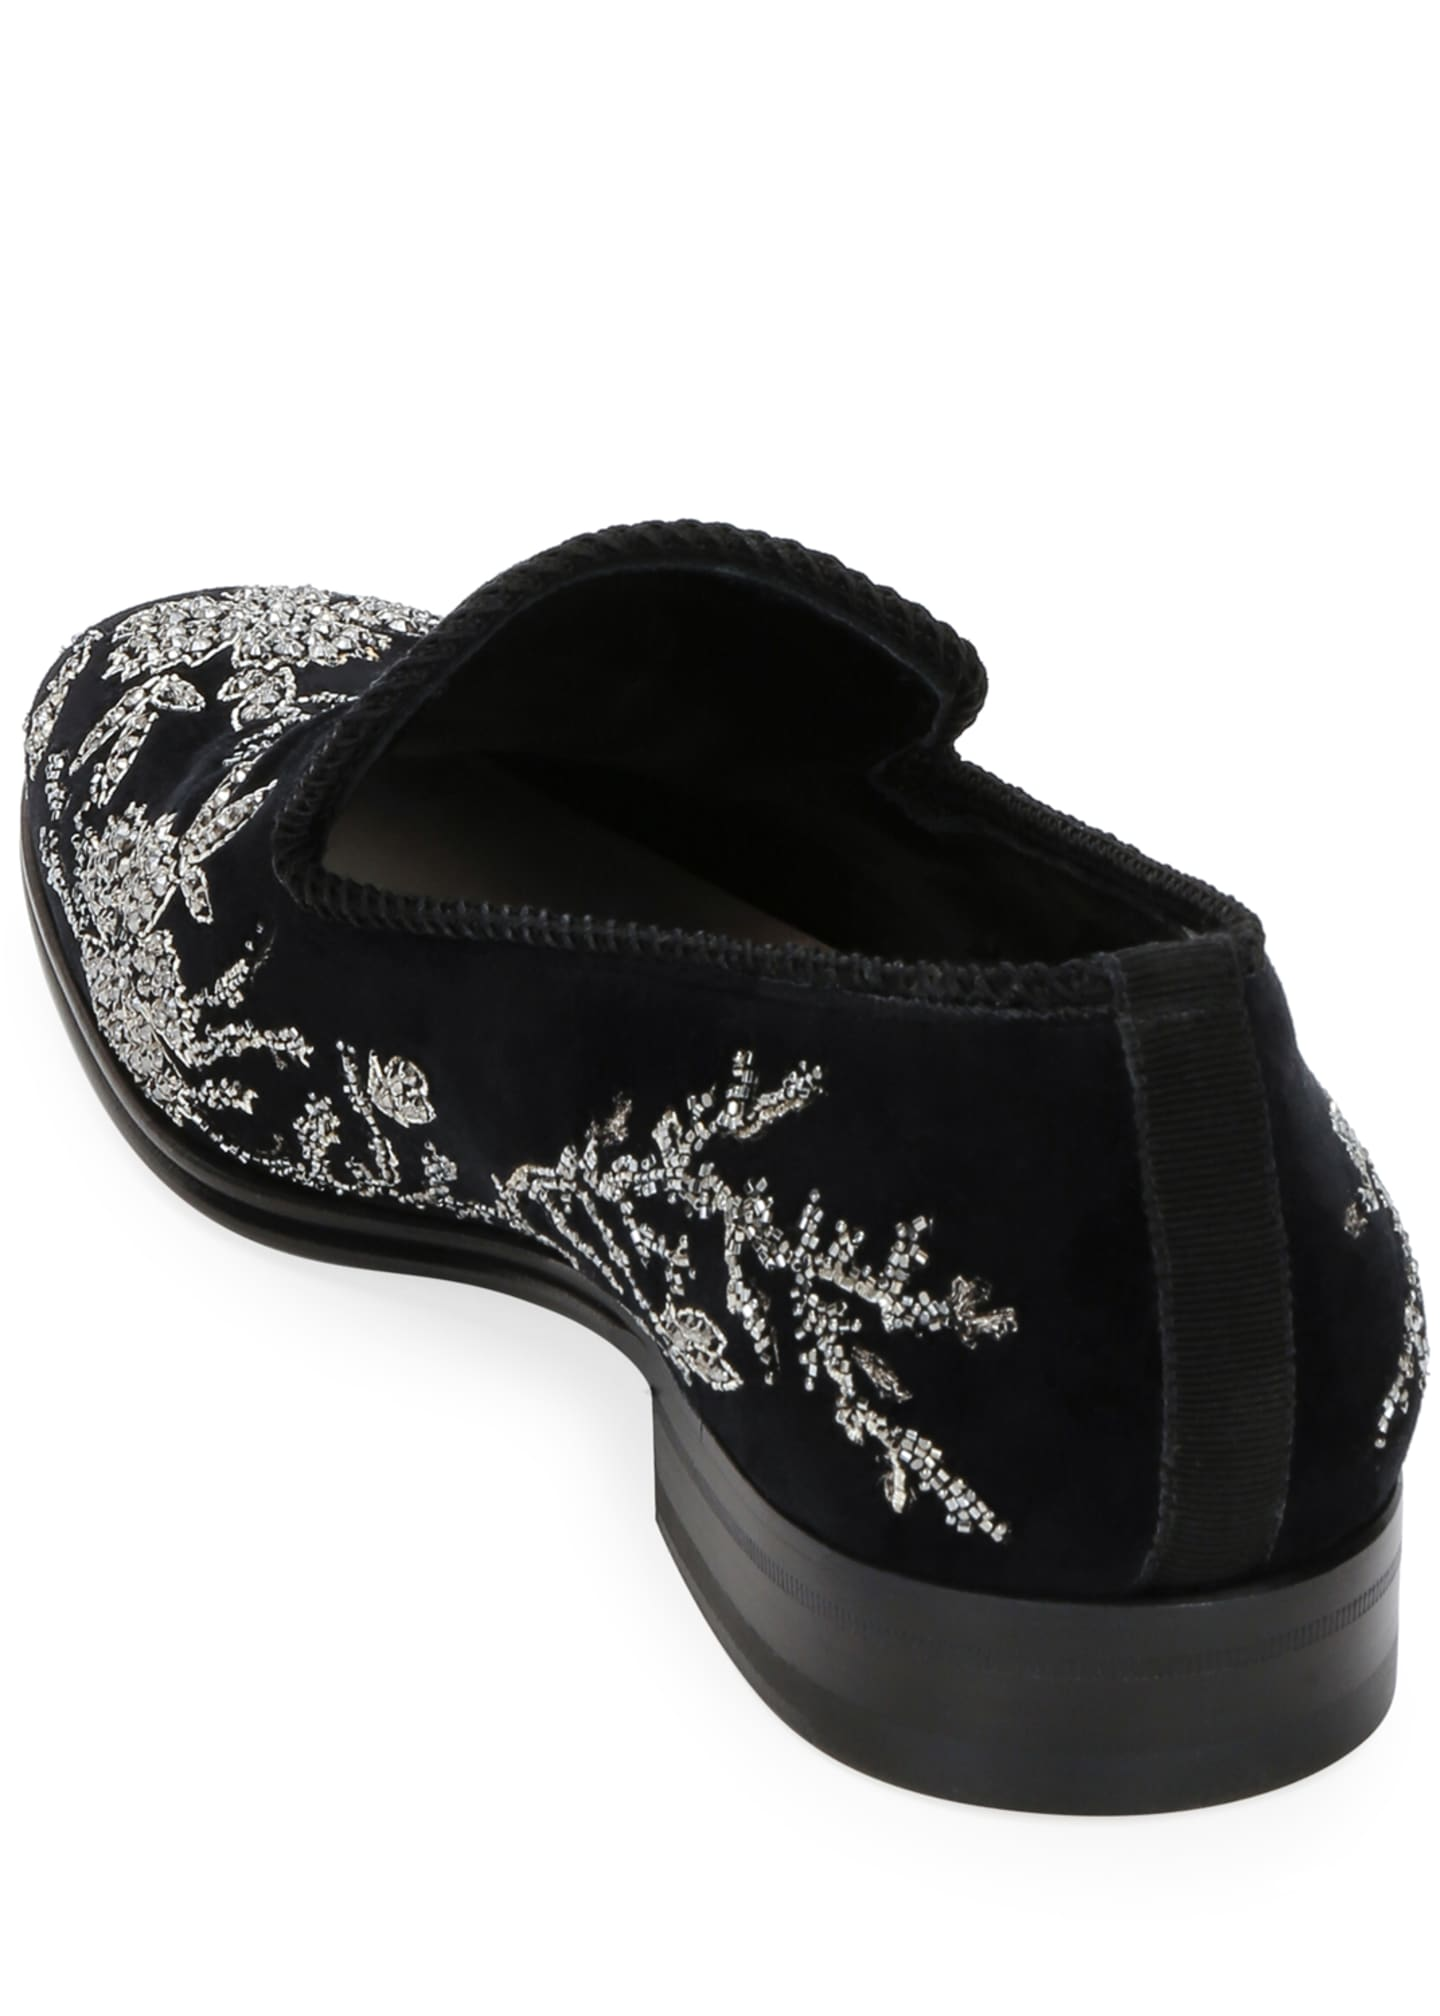 Image 4 of 4: Men's Embellished Velvet Formal Slip-Ons